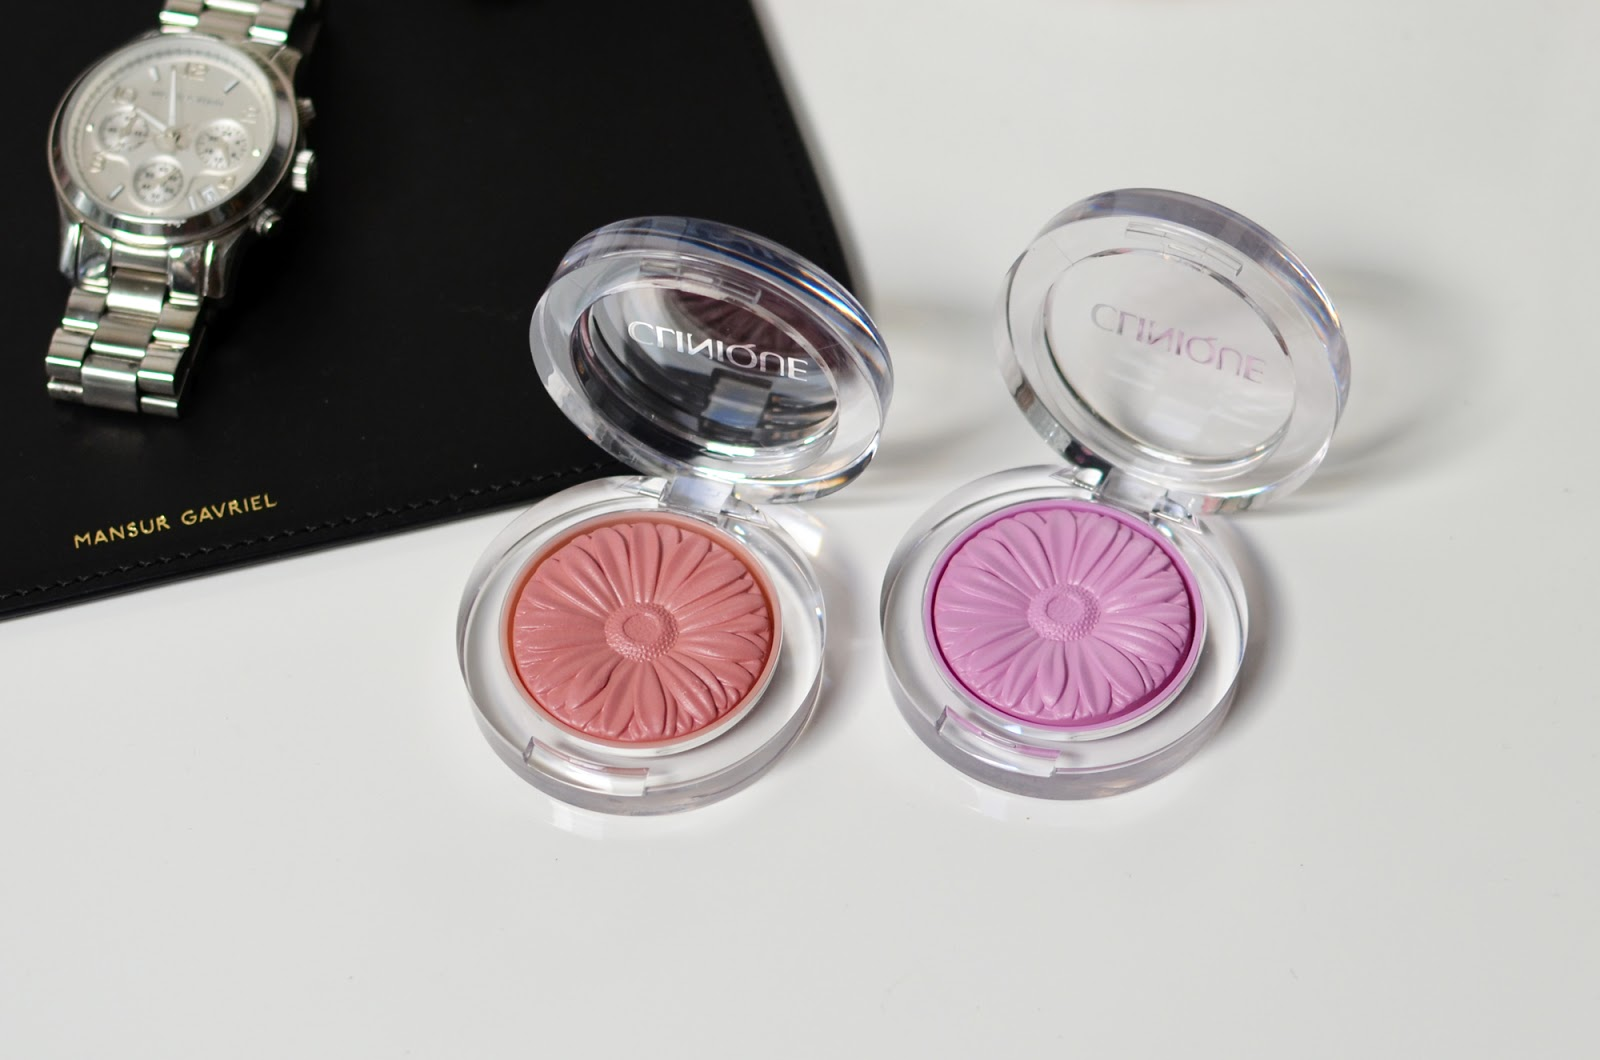 Clinique Cheek Pop blushes in Heather Pop and Pansy Pop